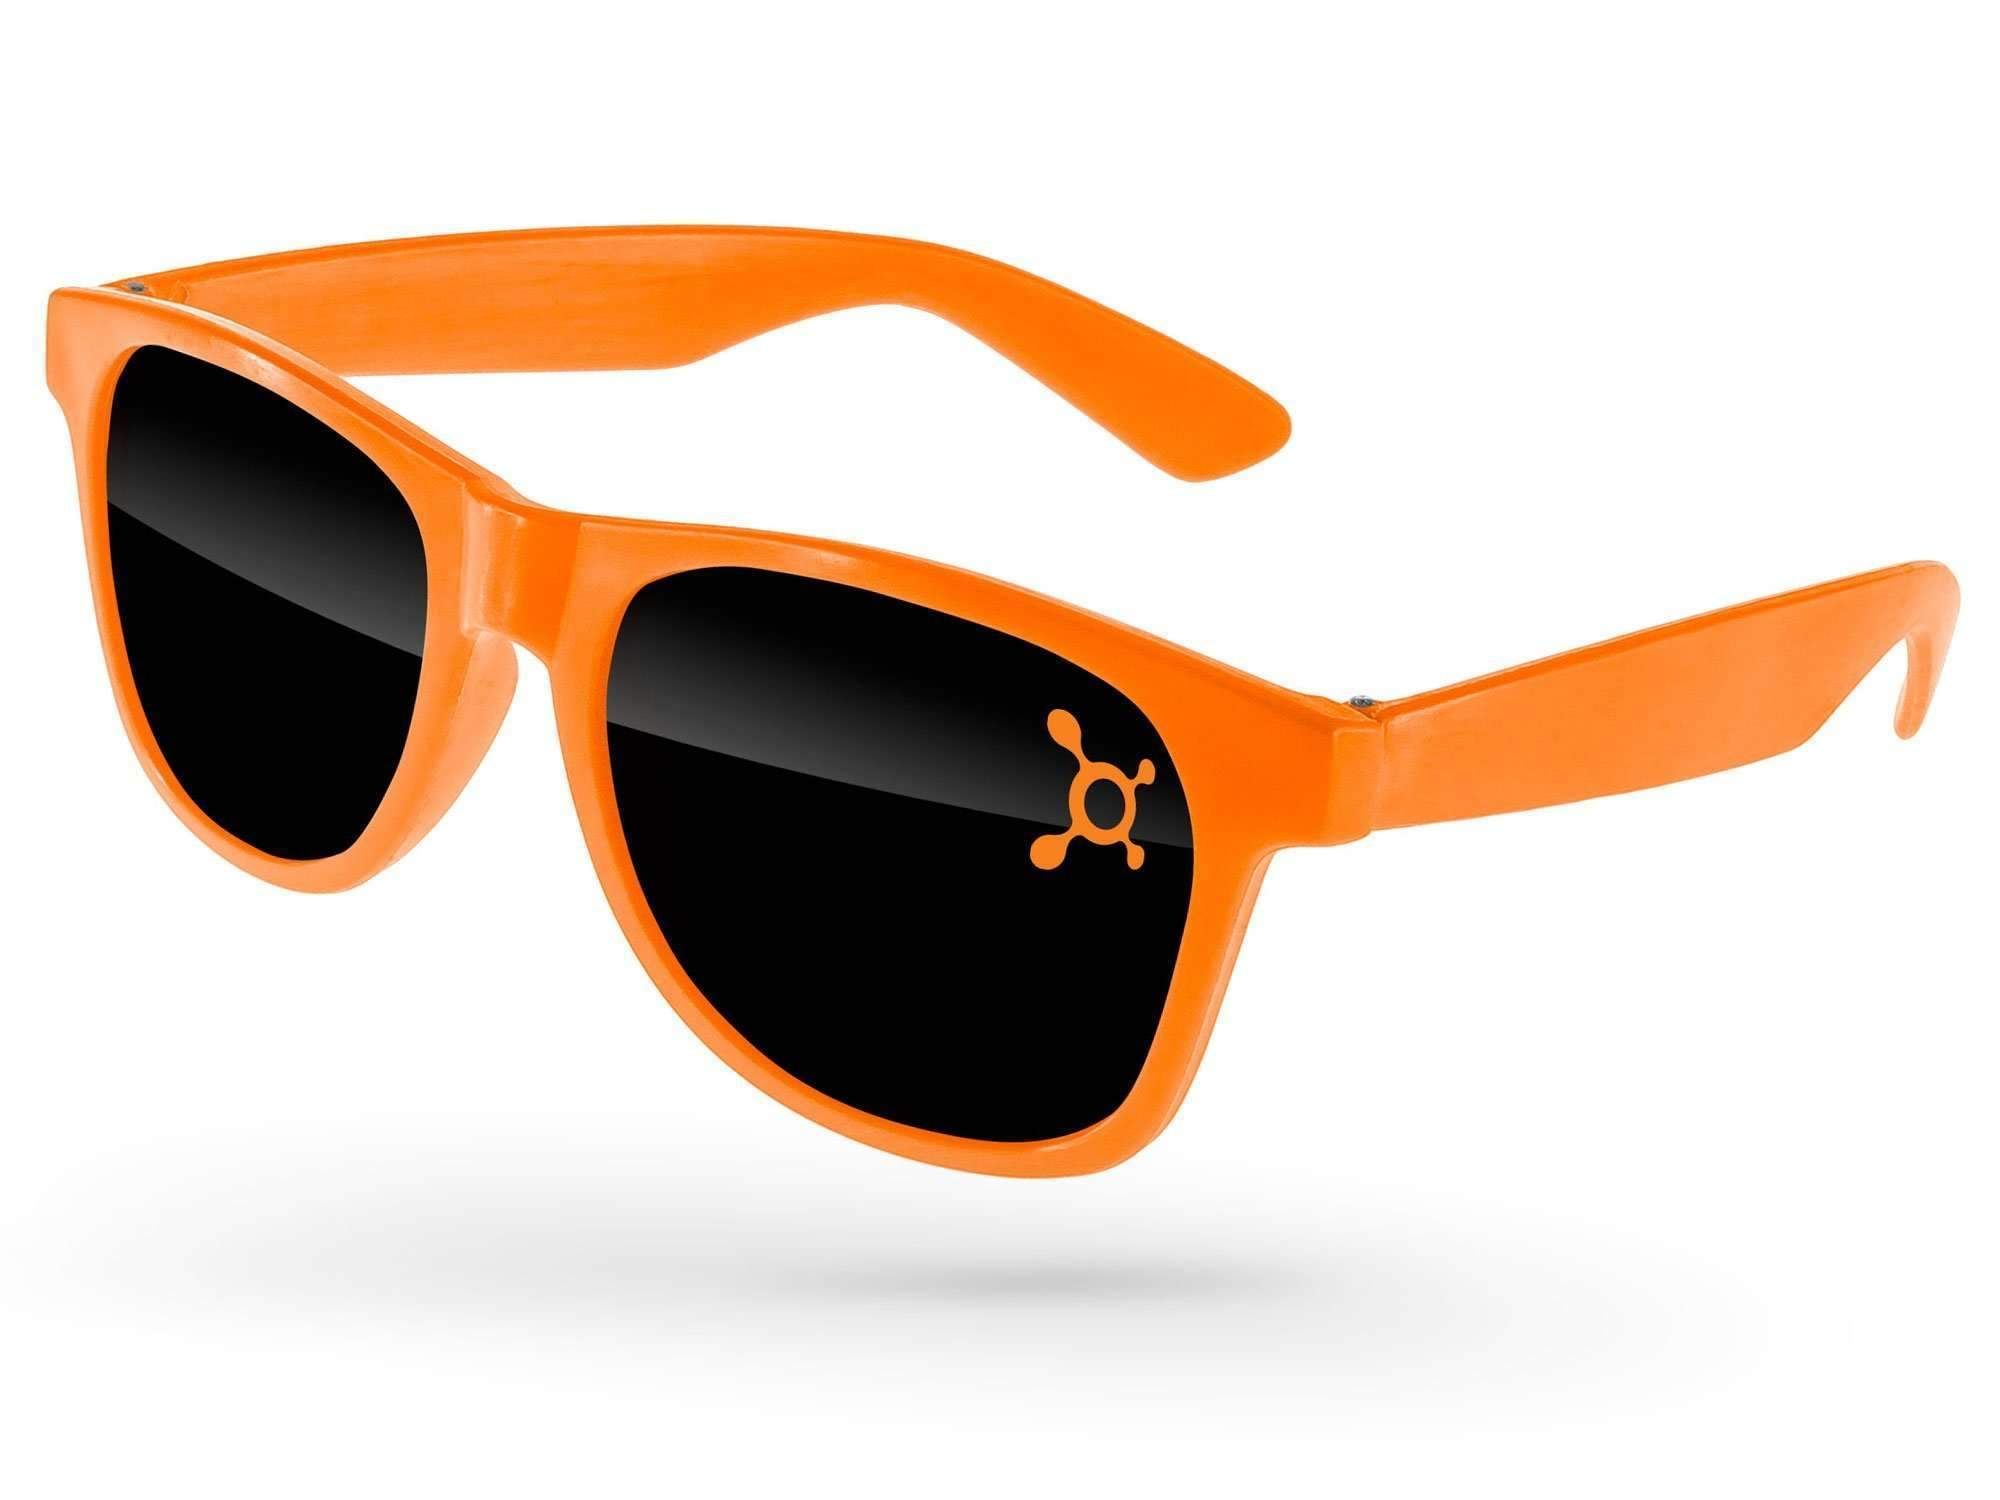 Value Retro Promotional Sunglasses w/ 1-color lens imprint